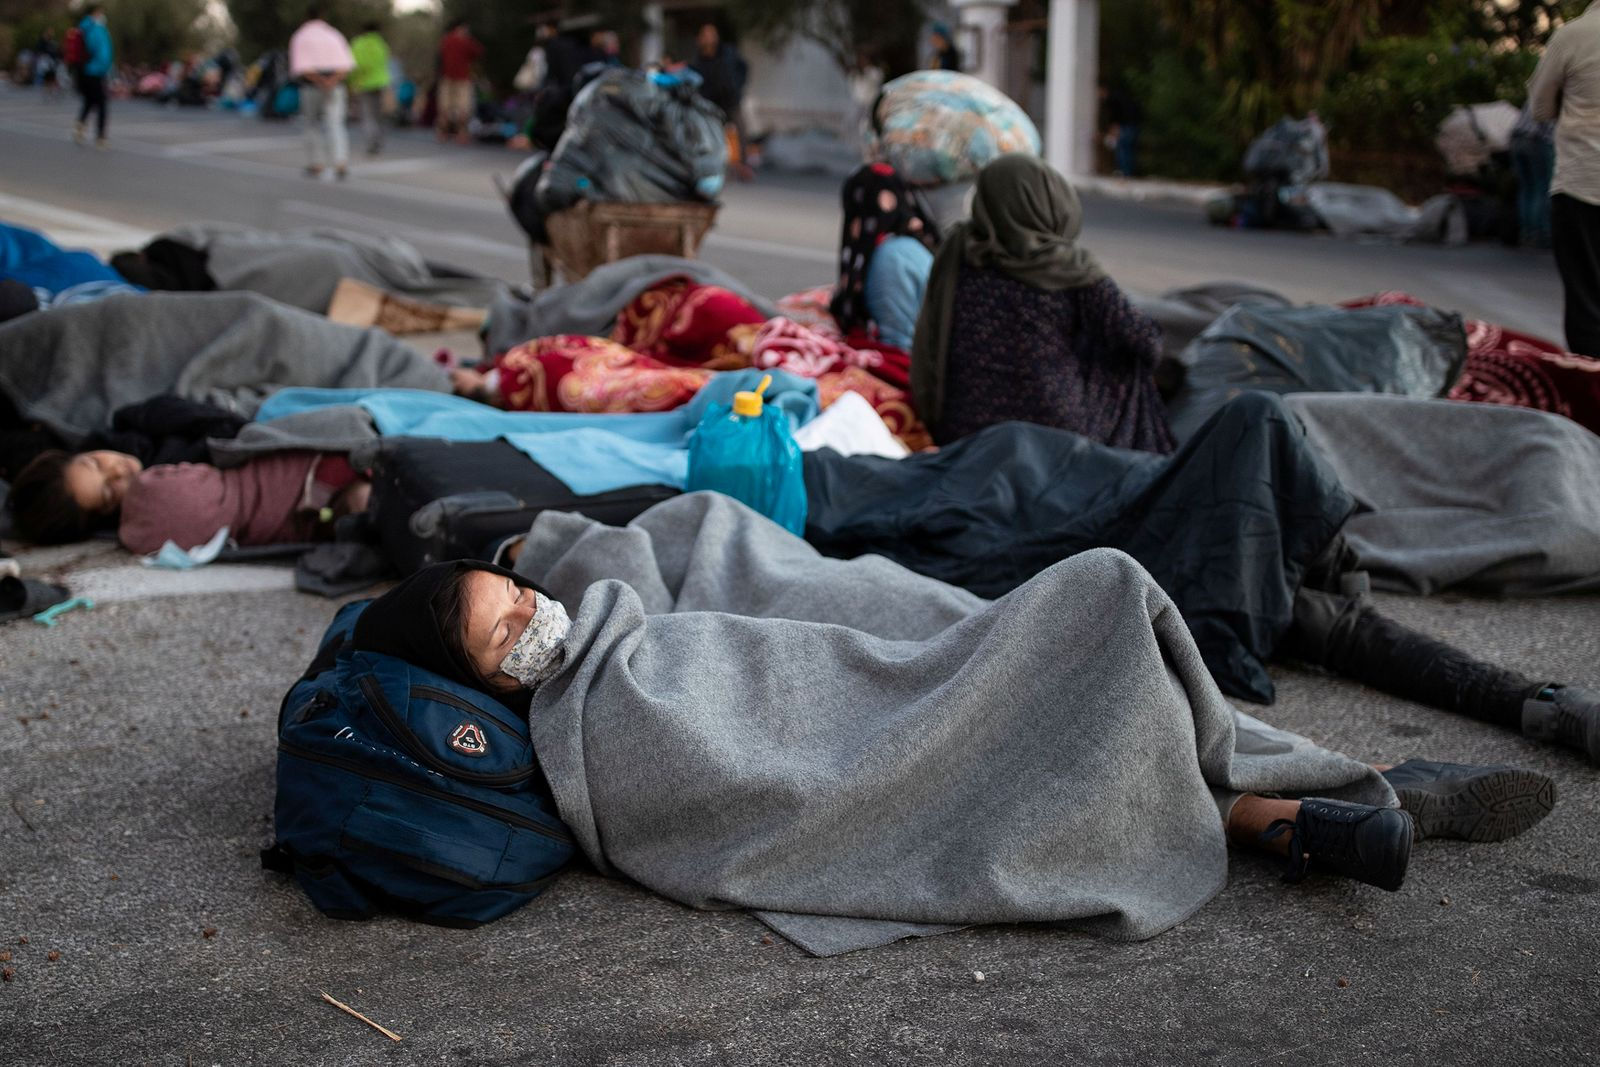 Refugees and migrants sleep on a road following a fire at the Moria camp on the island of Lesbos